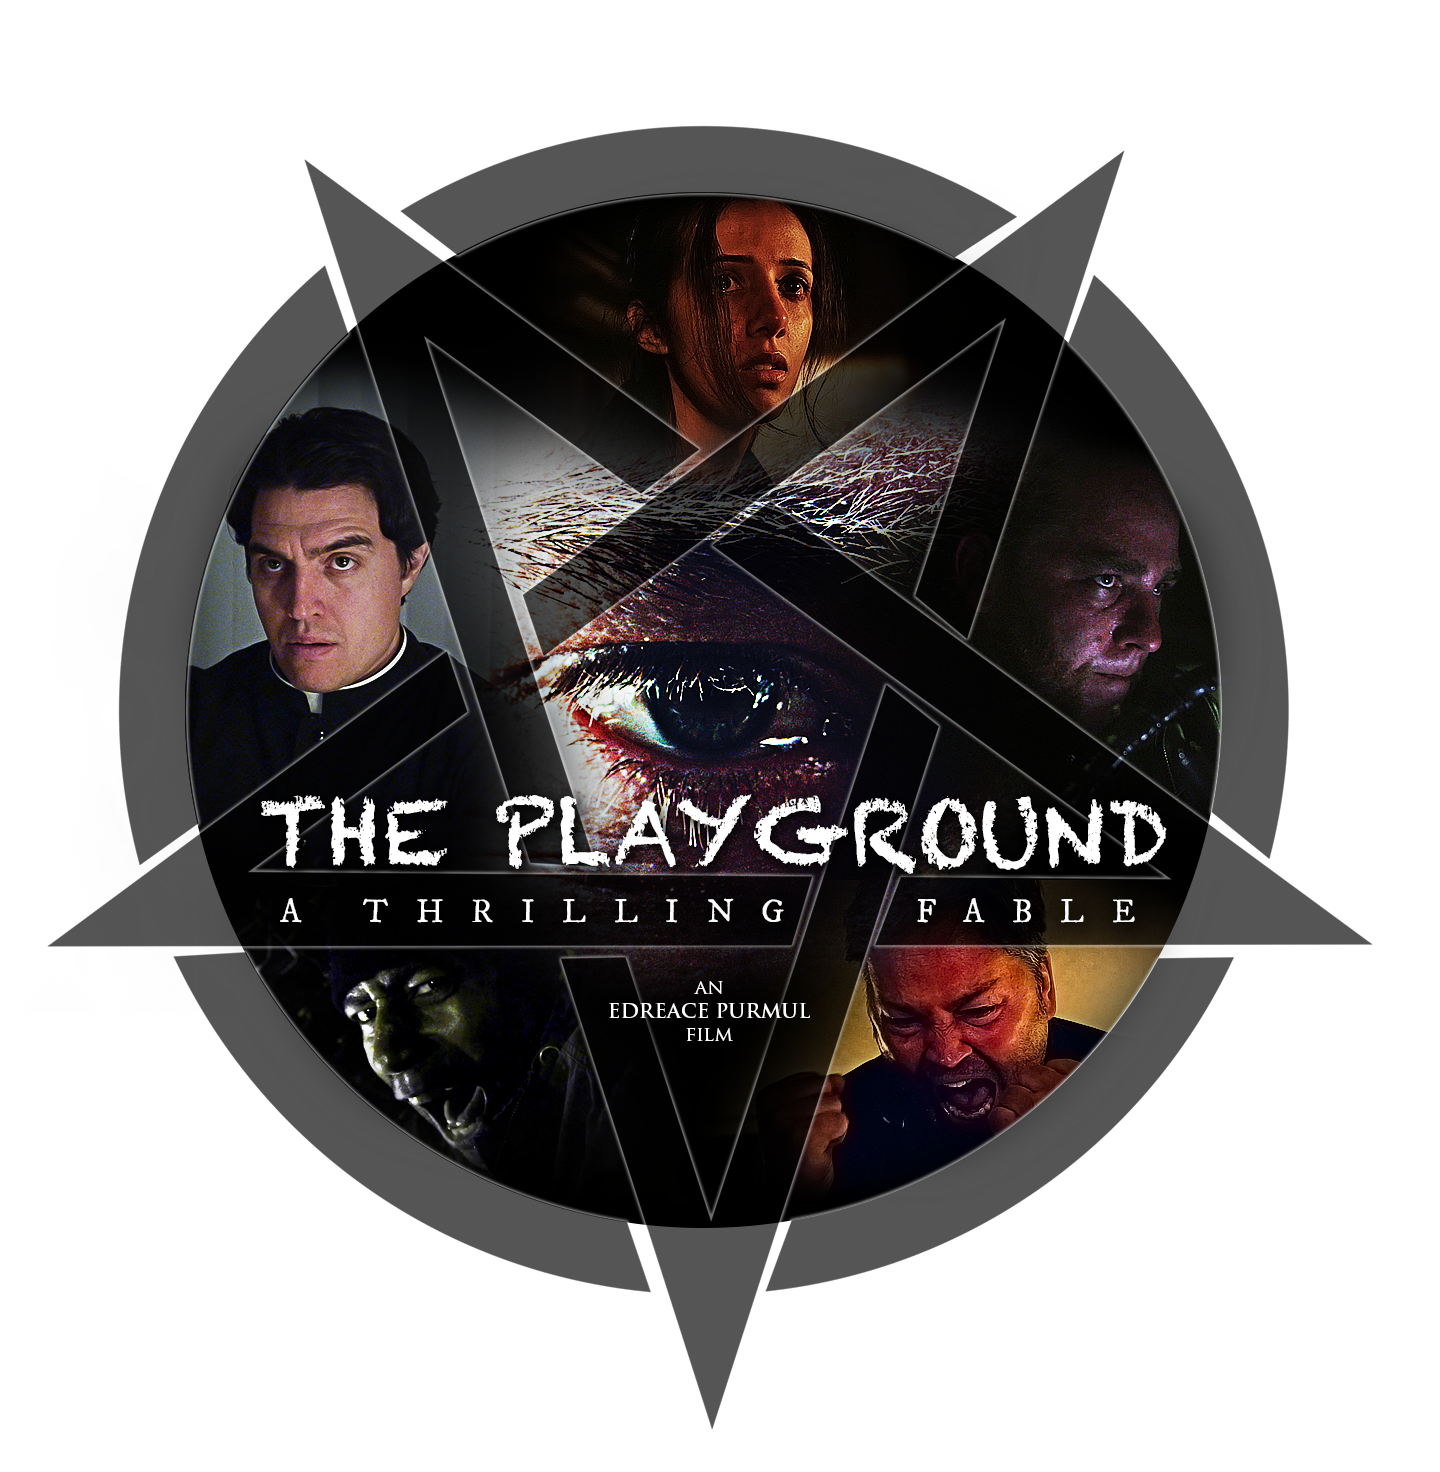 The Playground Film